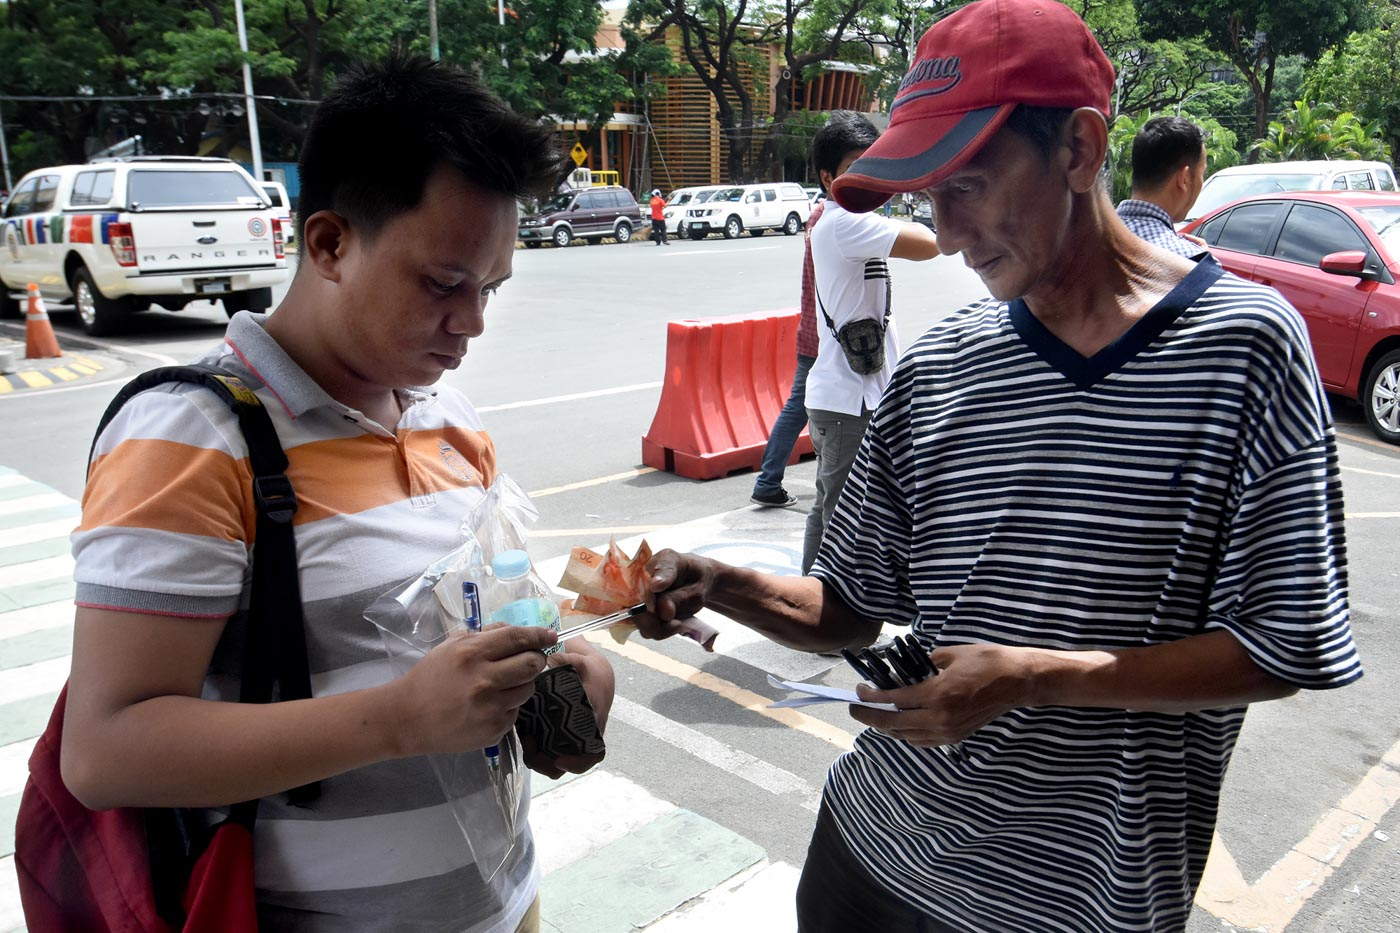 Mang Buboy, a pen vendor took the Job Fair as an opportunity to sell more pens. Photo by Angie de Silva/Rappler